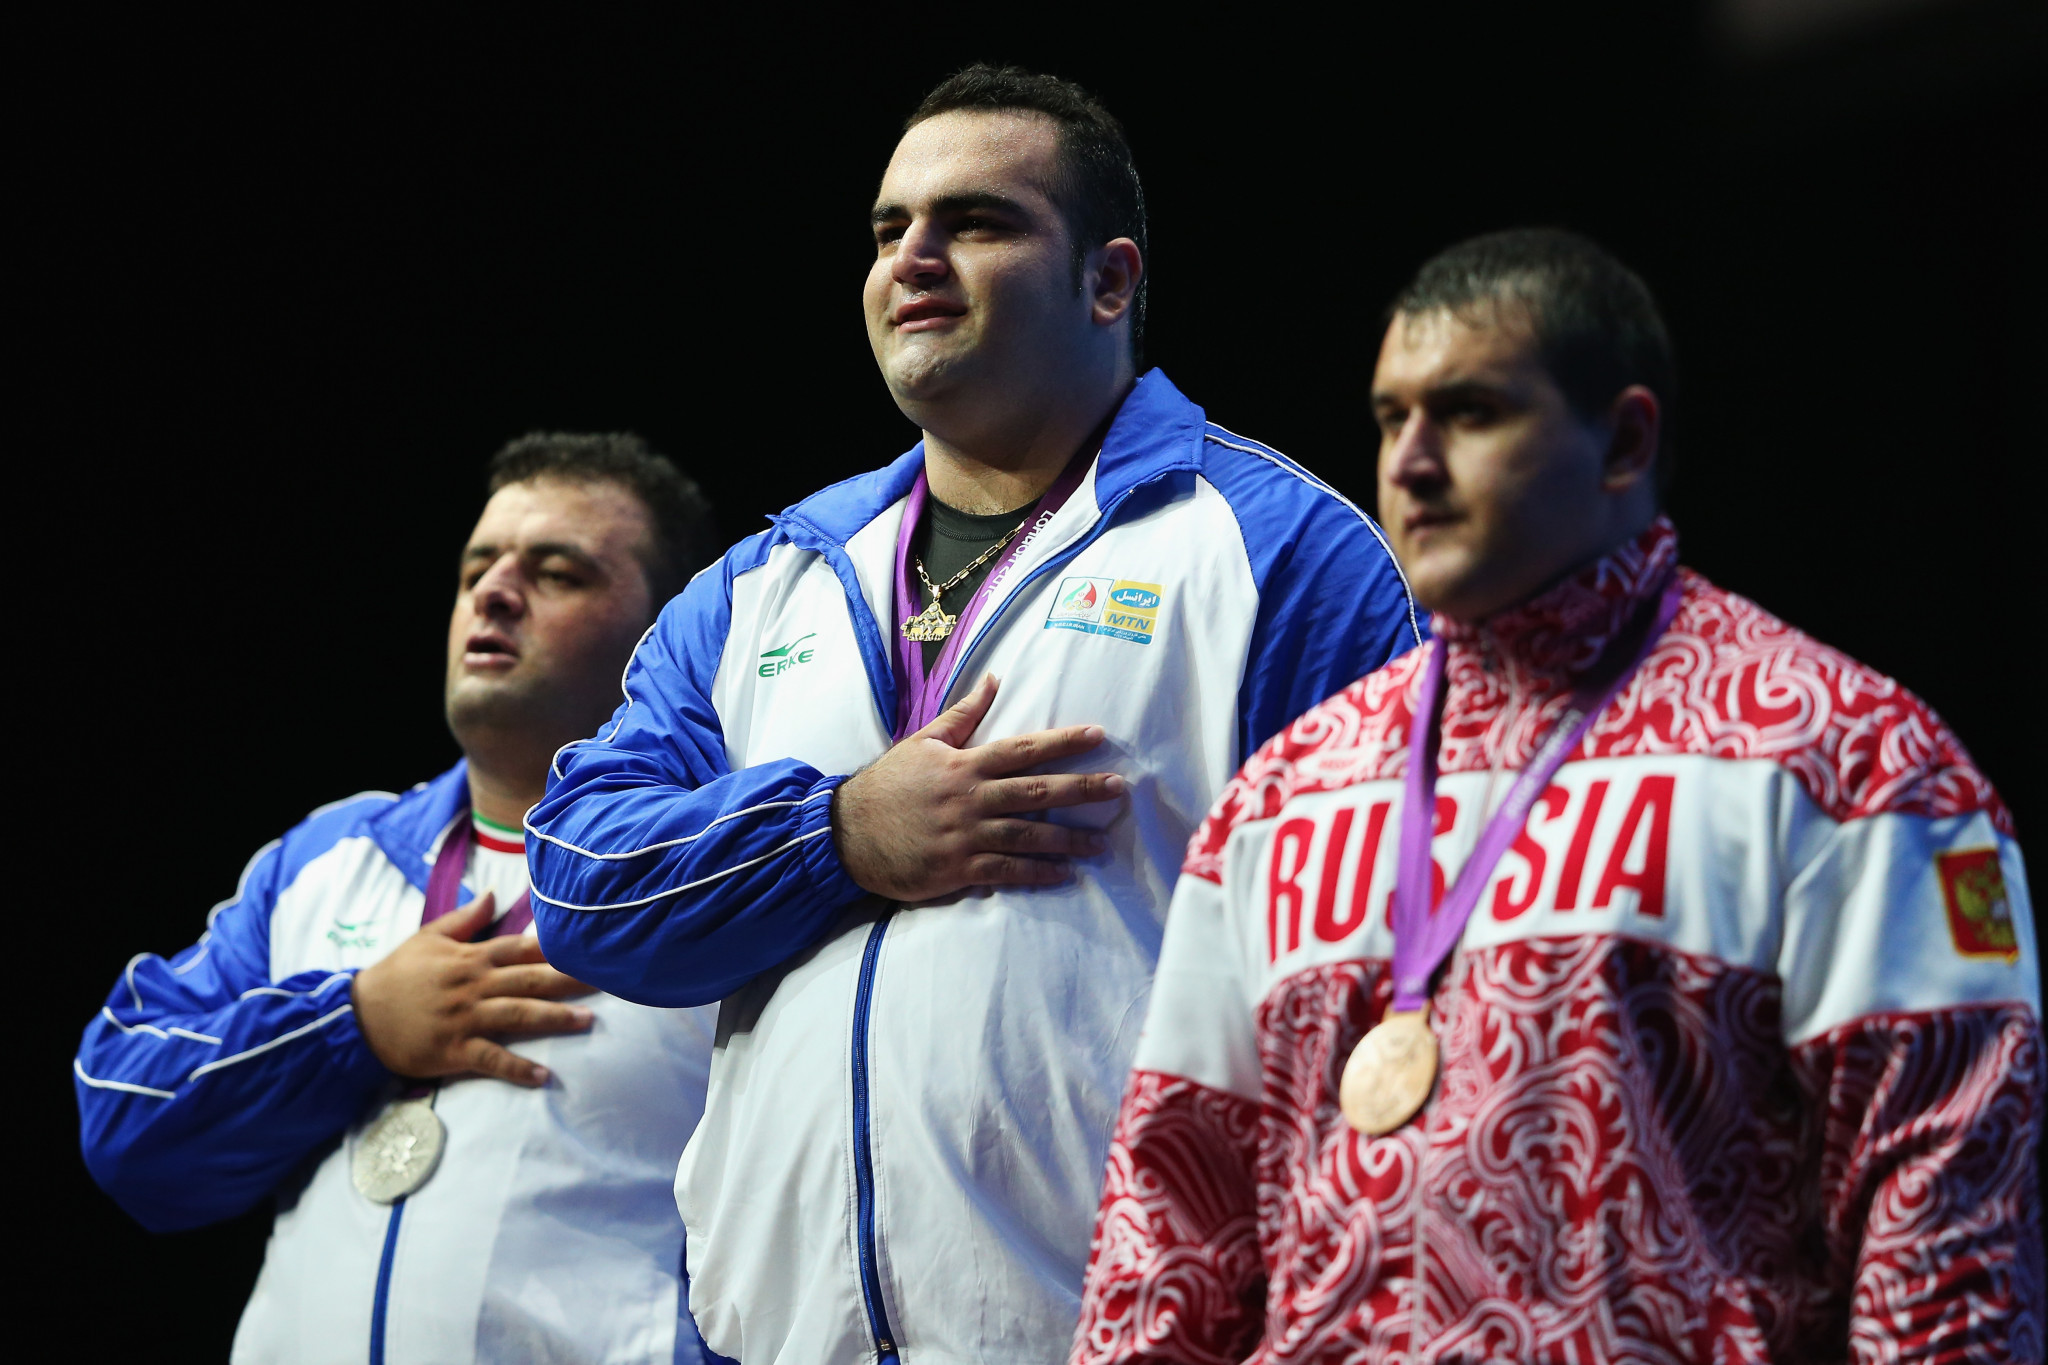 Ruslan Albegov, right, pictured with his two fellow medallists from Iran celebrating Olympic bronze at London 2012 ©Getty Images